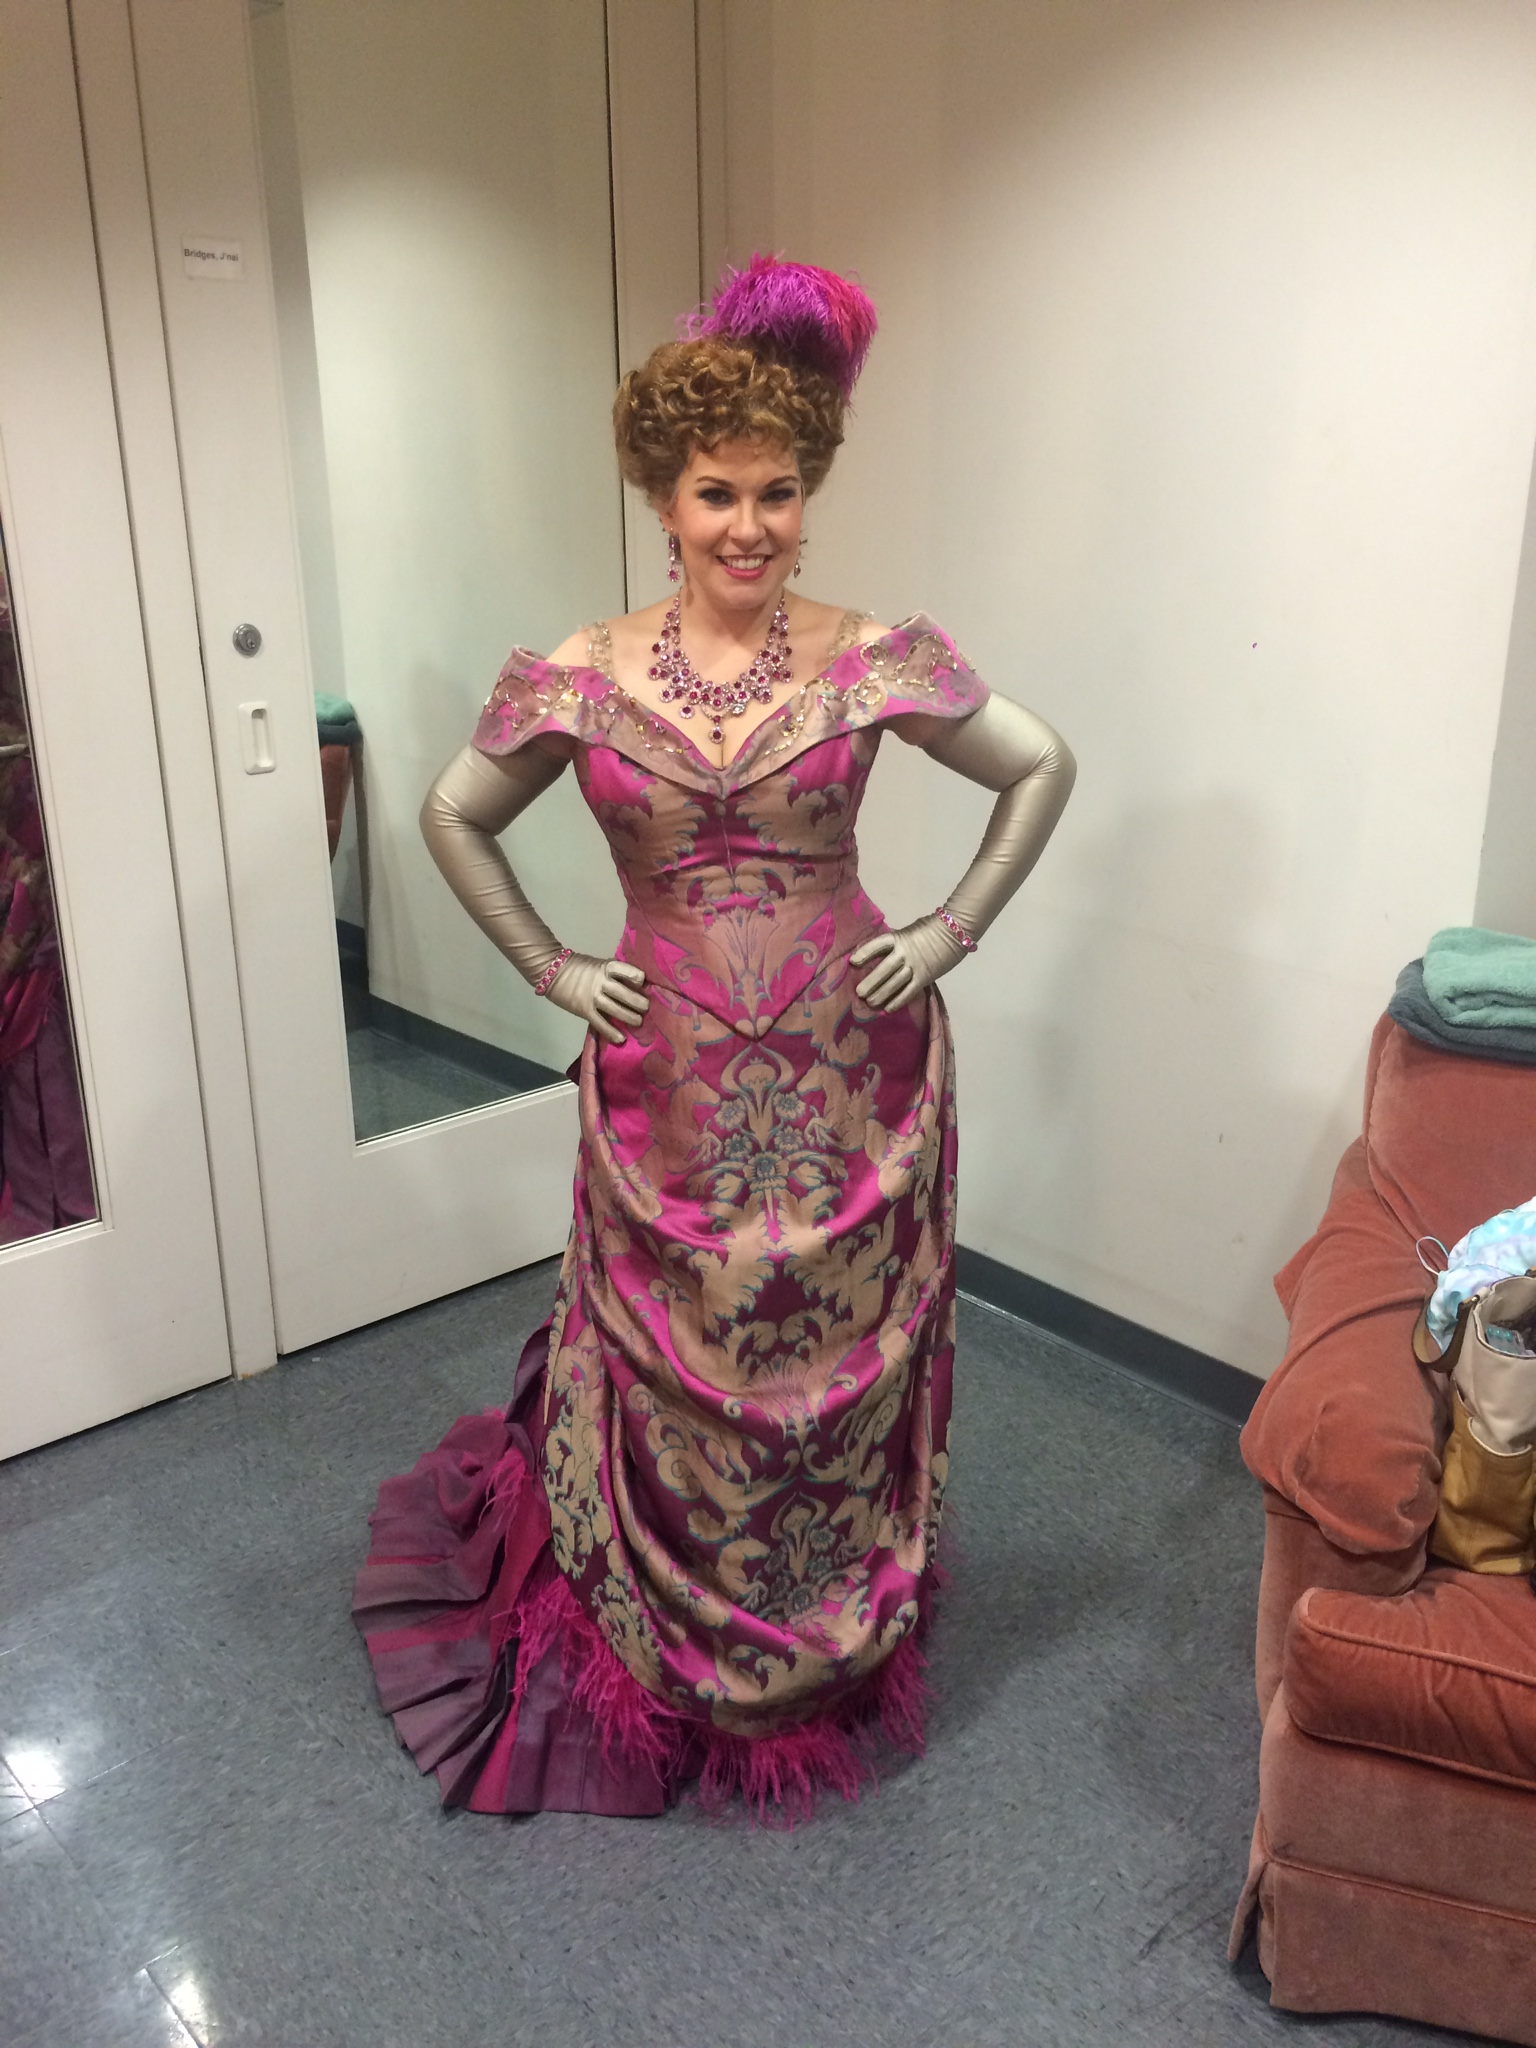 Valencienne in The Merry Widow